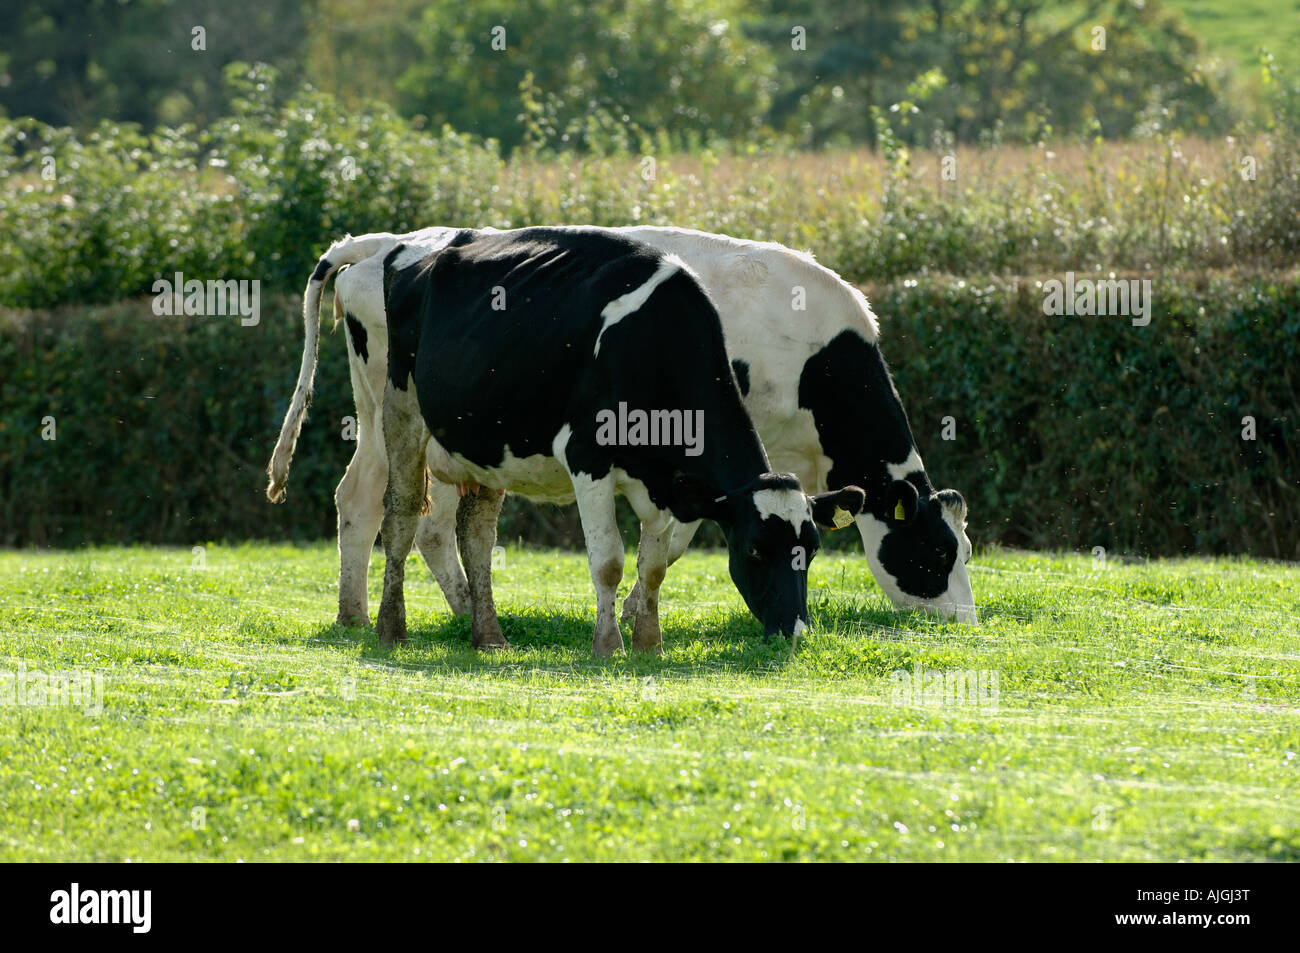 Holstein Friesian cow grazing on short grass with threads of gossamer from money spiders - Stock Image